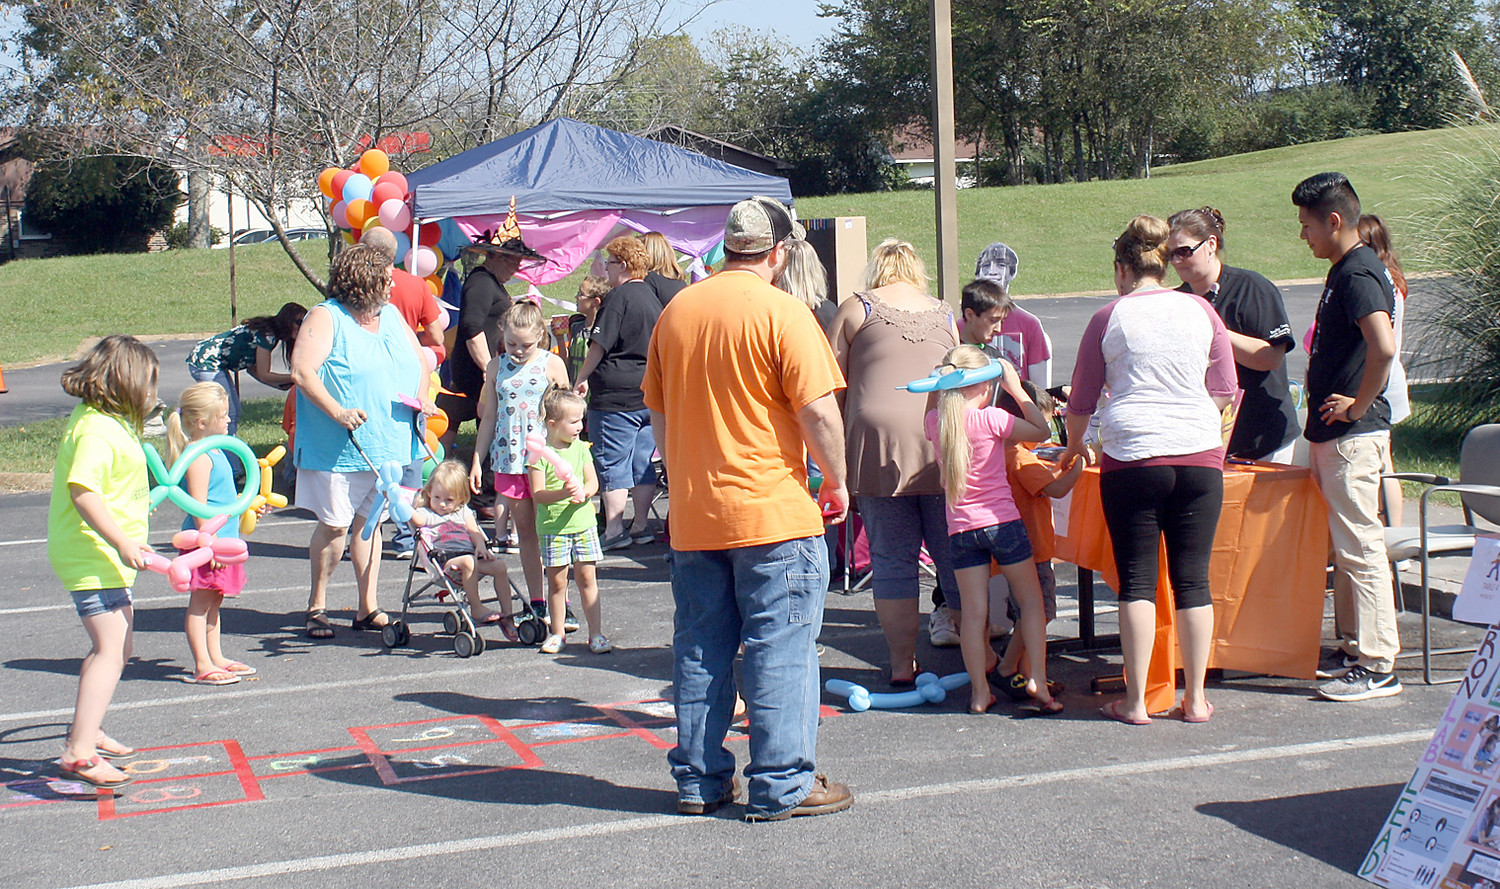 A SMALL CROWD gathered early at Friday's Fall Festival. Under the small tent to the right was Kim Morrison making balloon animals. The second booth had information on the health department's WIC Program.